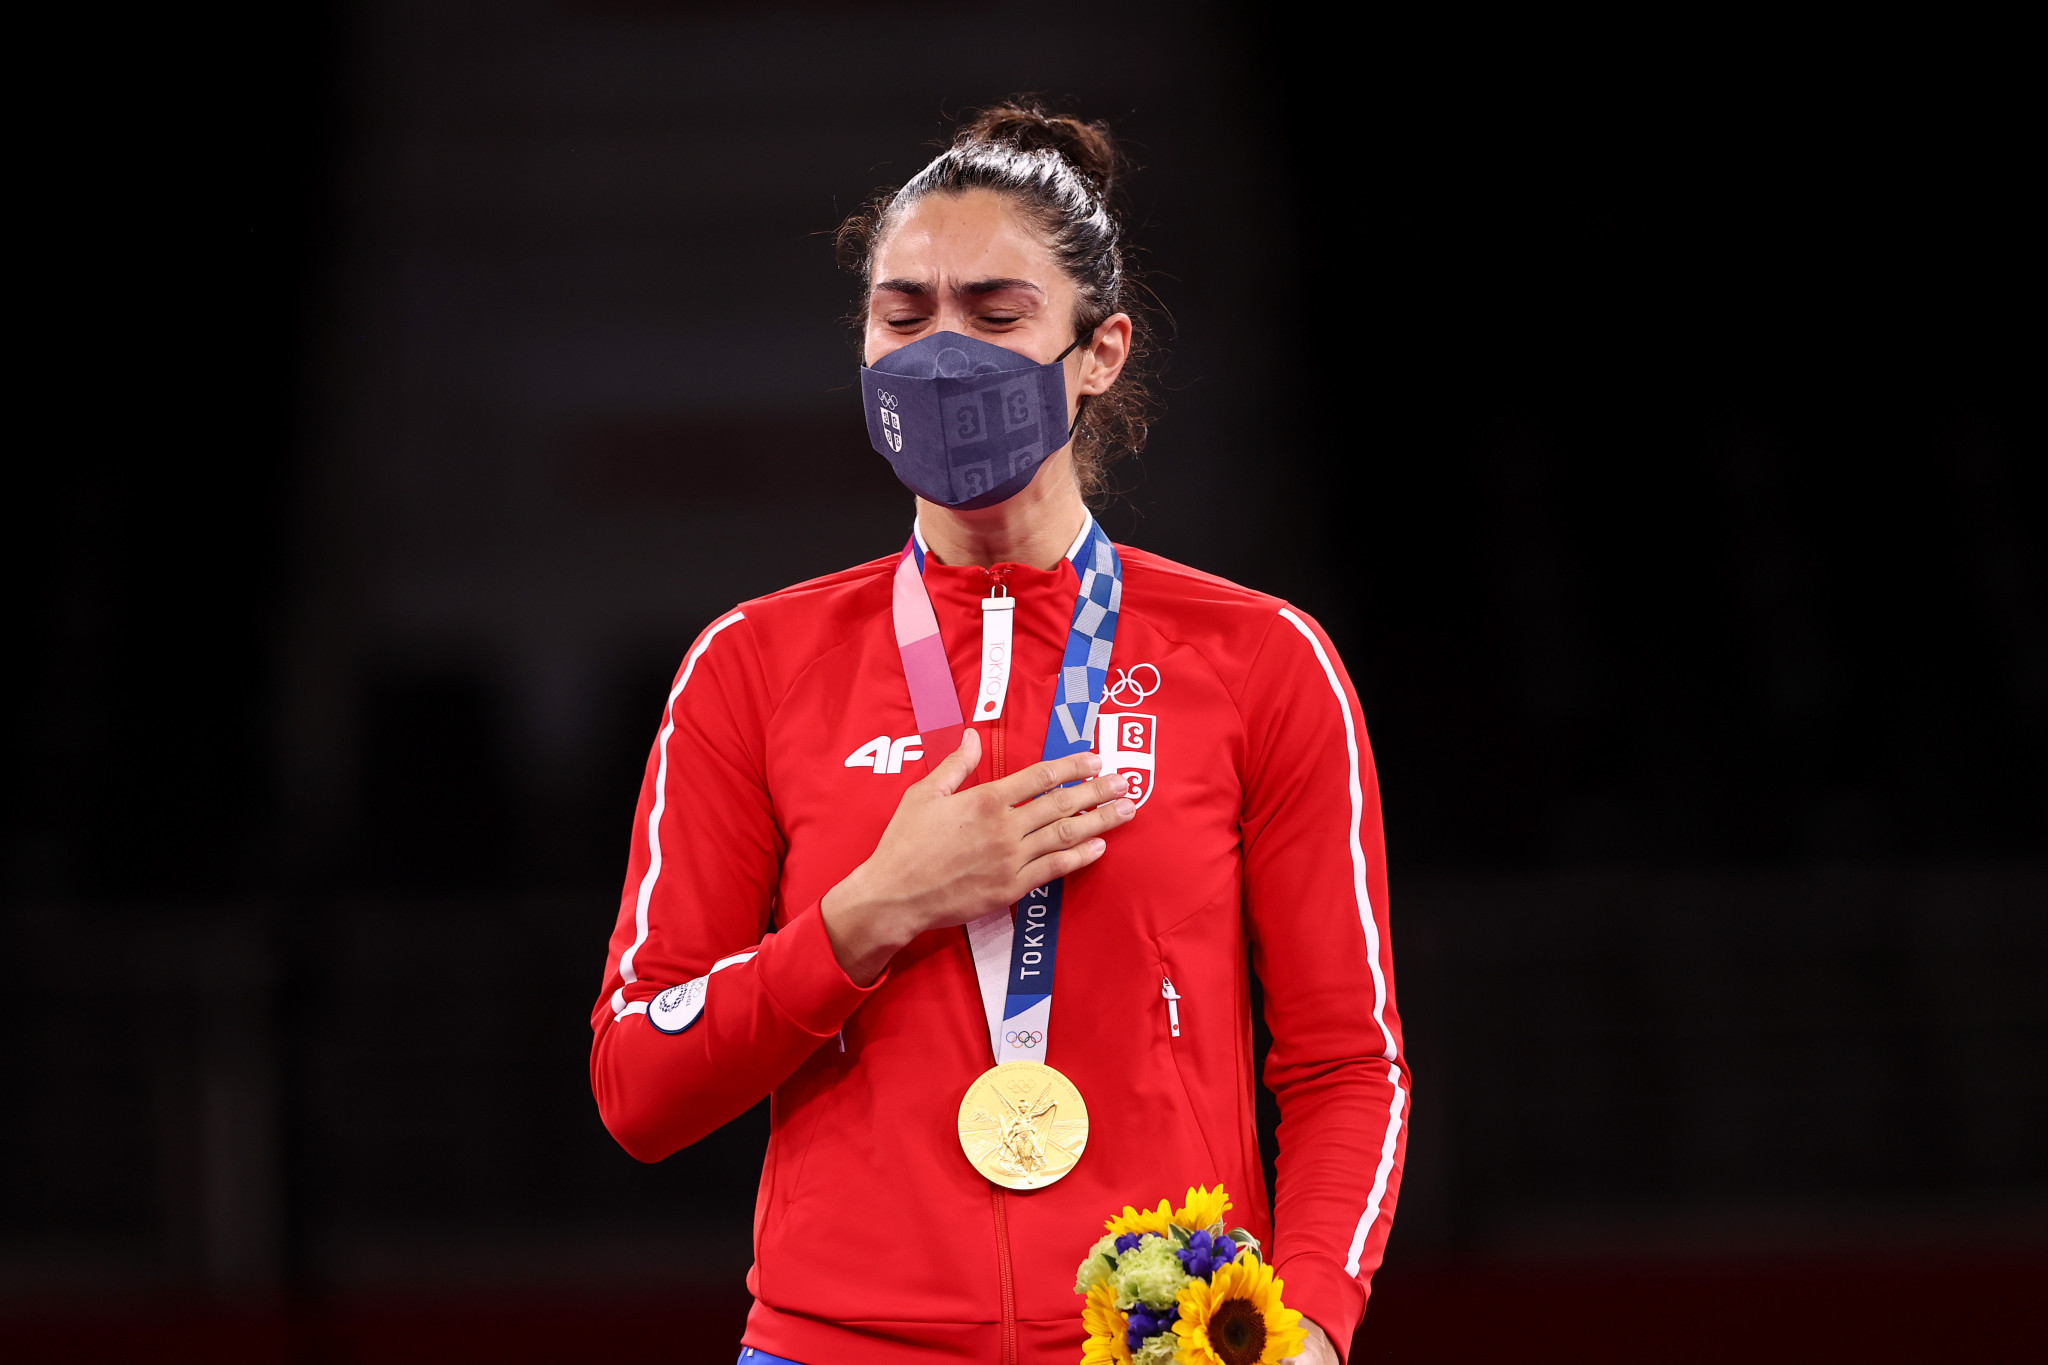 Milica Mandić shed tears on the podium after becoming Serbia's first gold medallist at this year's Olympic Games ©Getty Images